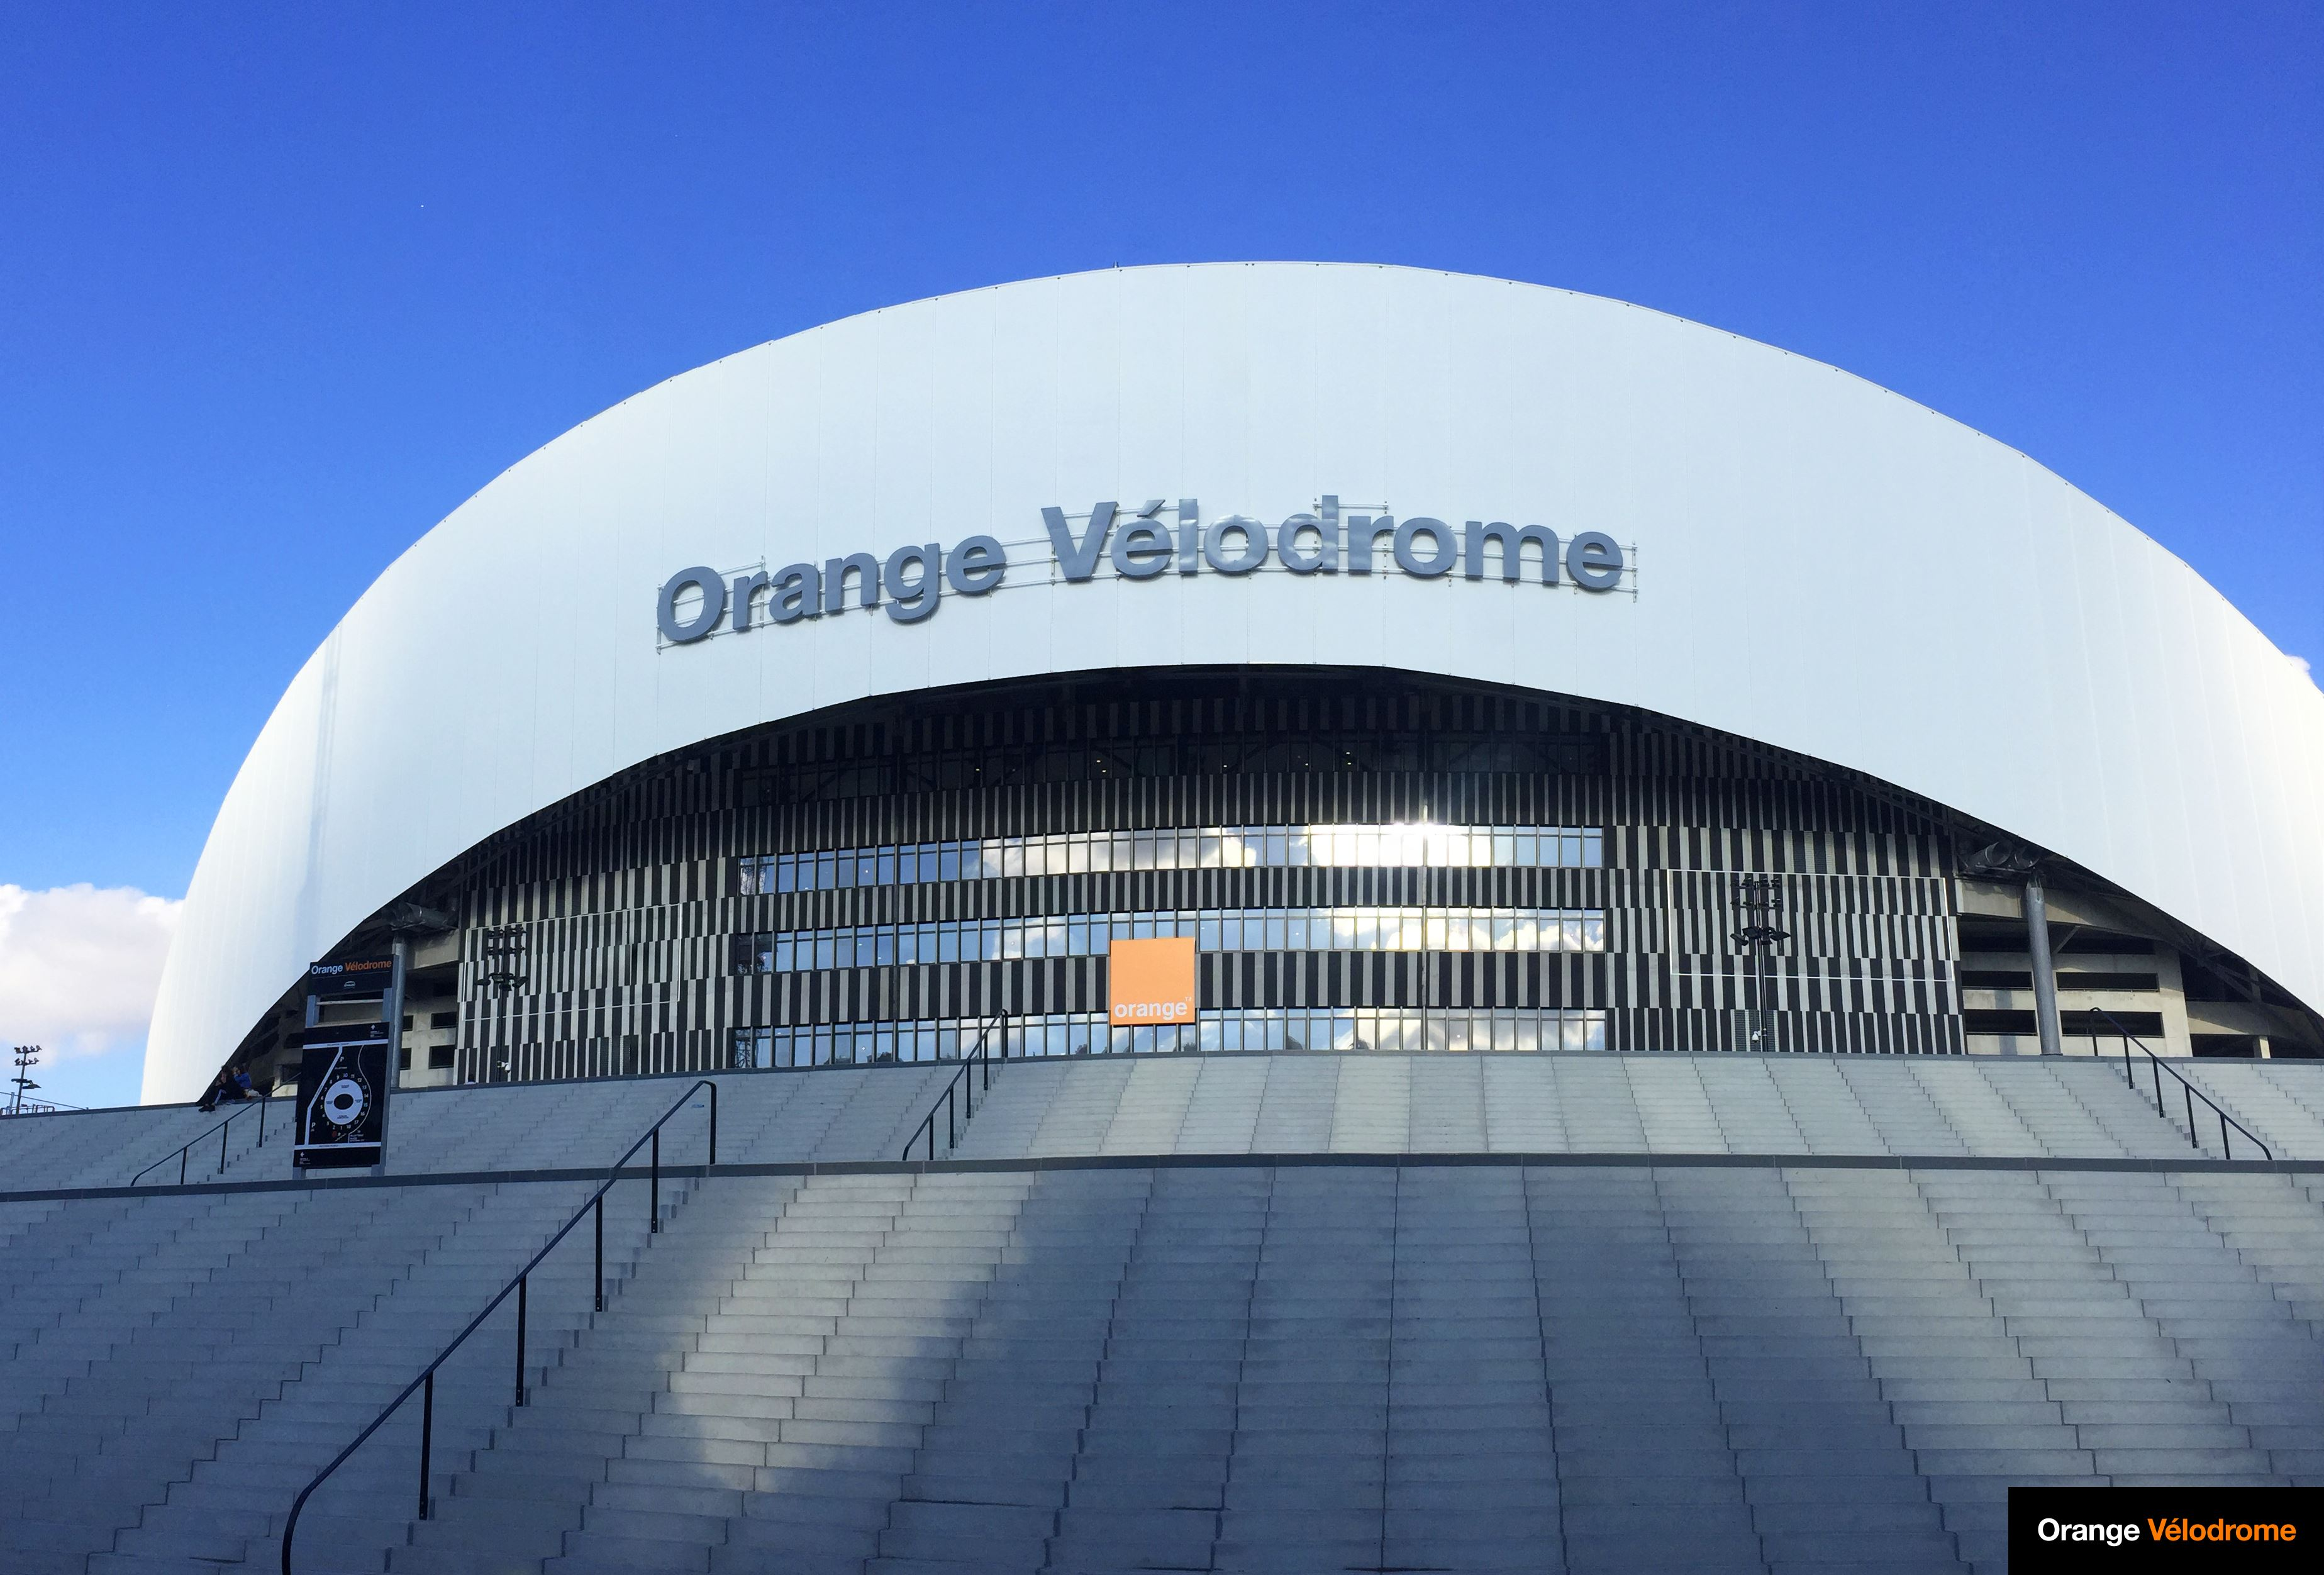 Visite Orange Vélodrome